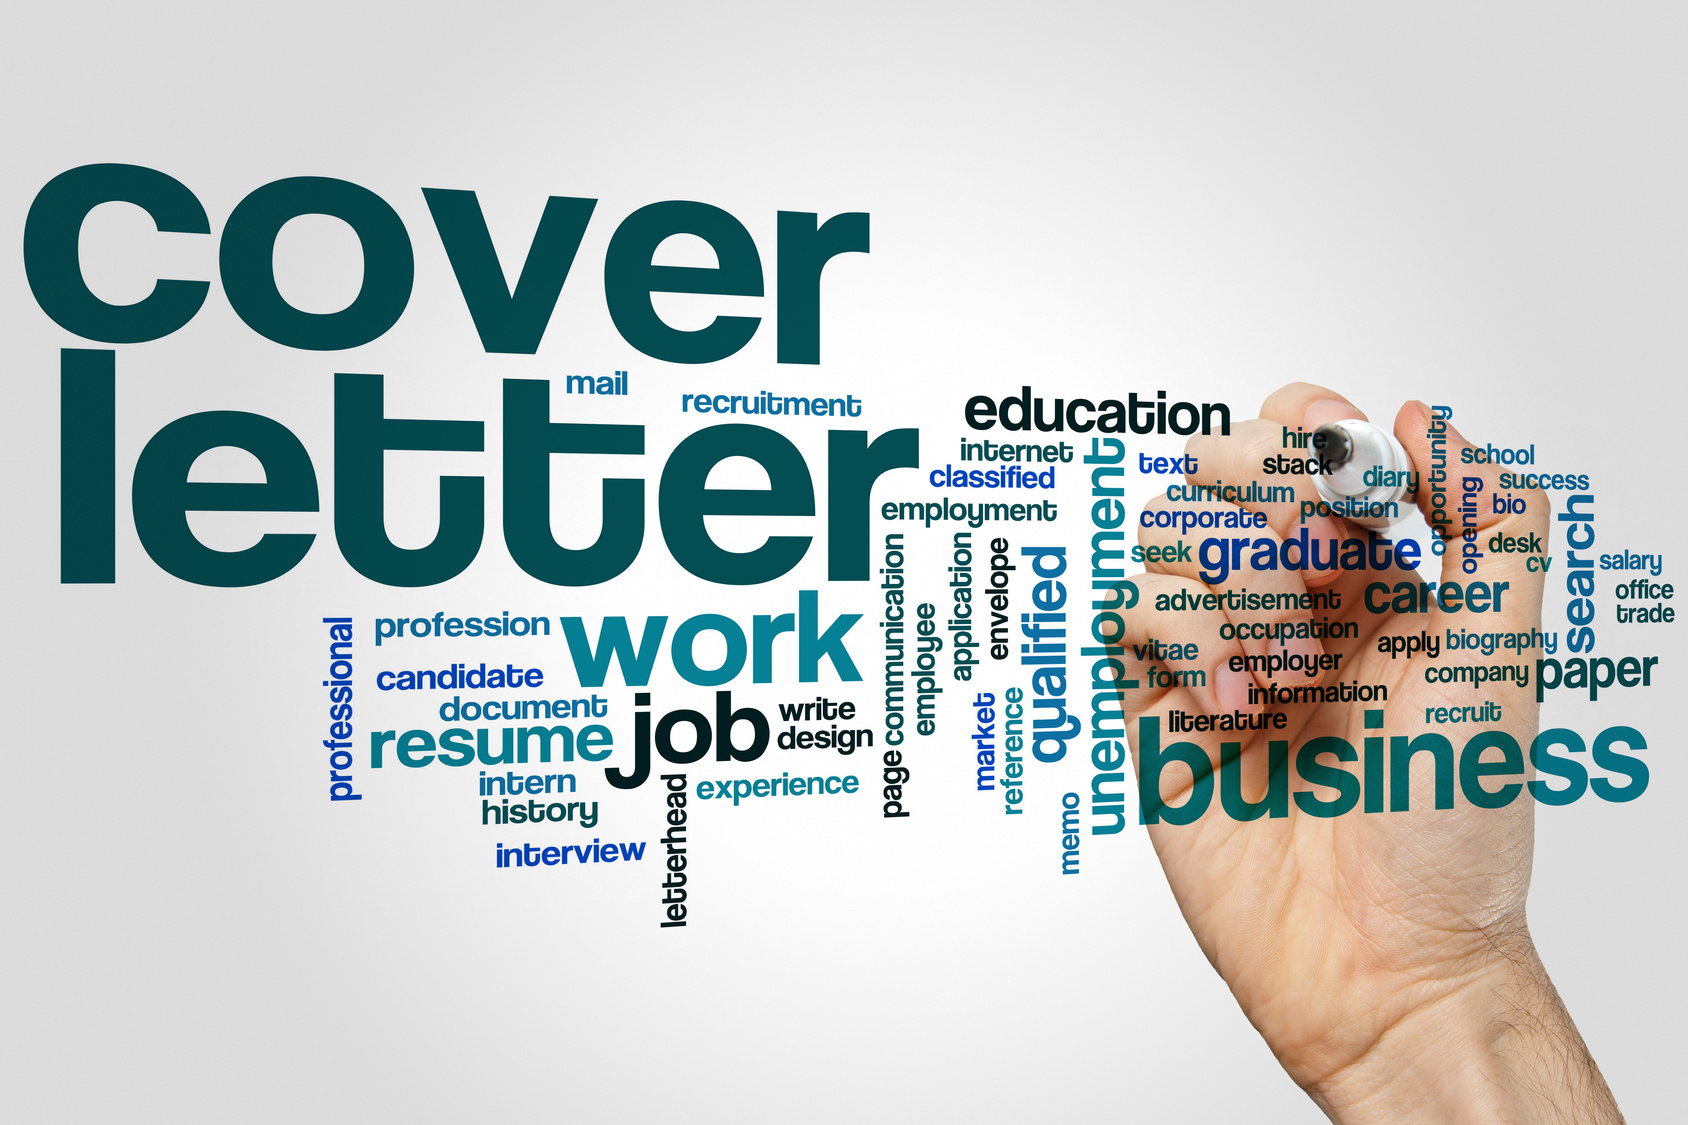 tips on writing a winning cover letter Recruiters and employers don't waste too much time on cover letters despite asking for them when sending your cv your cover letter should be straight to the point.